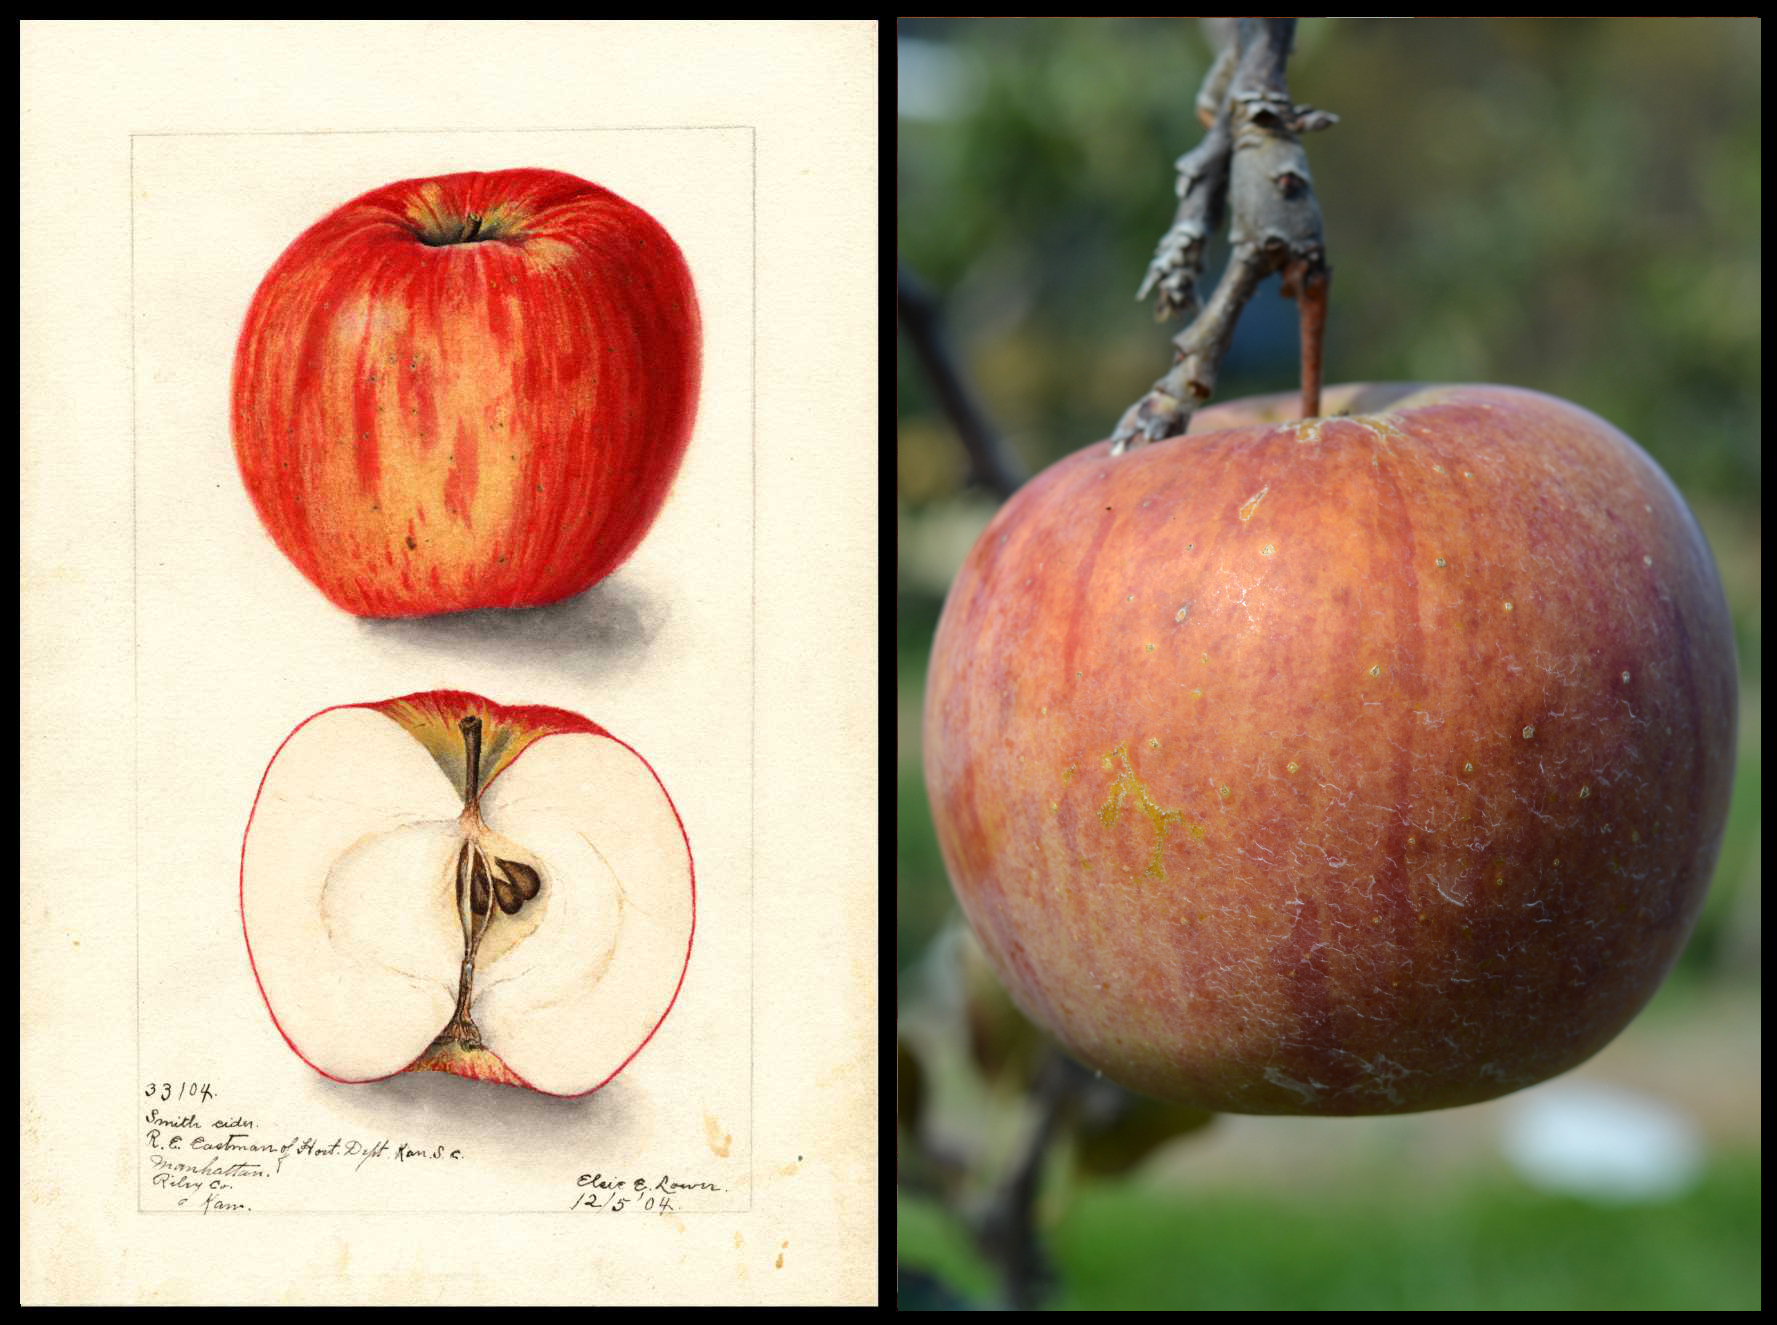 mottled red and yellow apple giving it an orangish appearance